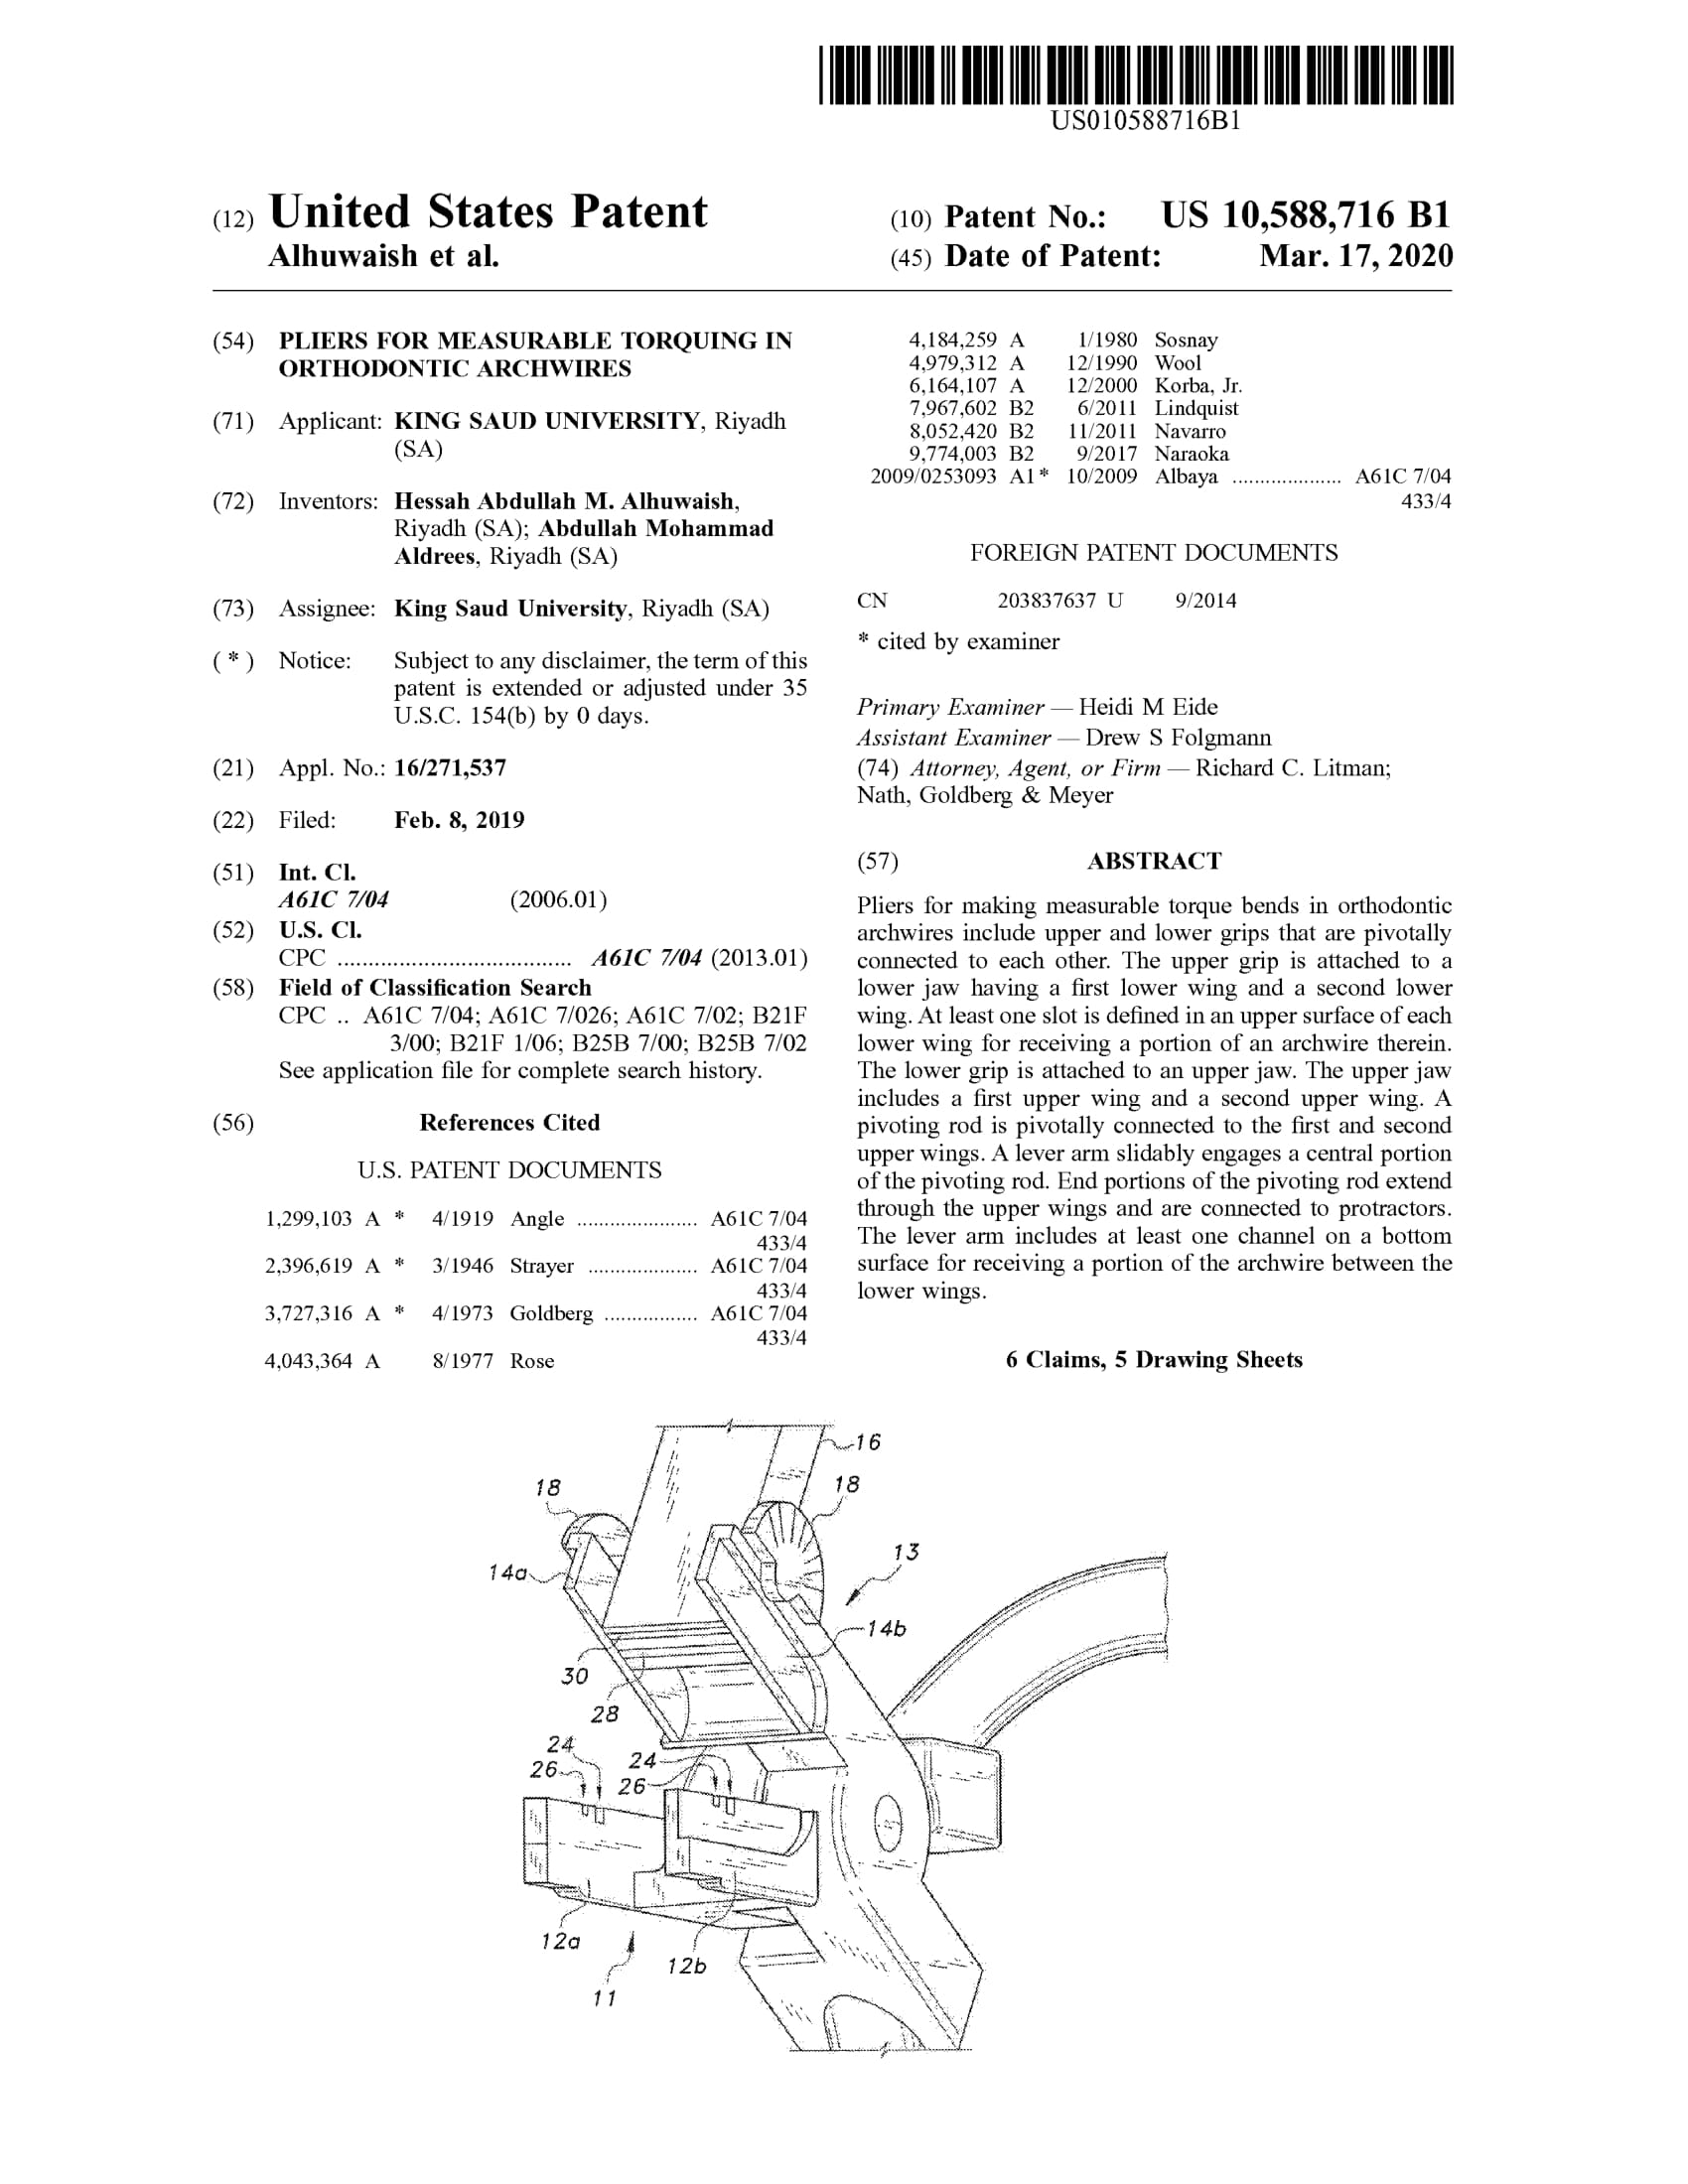 """Pliers for measurable torquing in orthodontic archwires"" Patent for KSU"